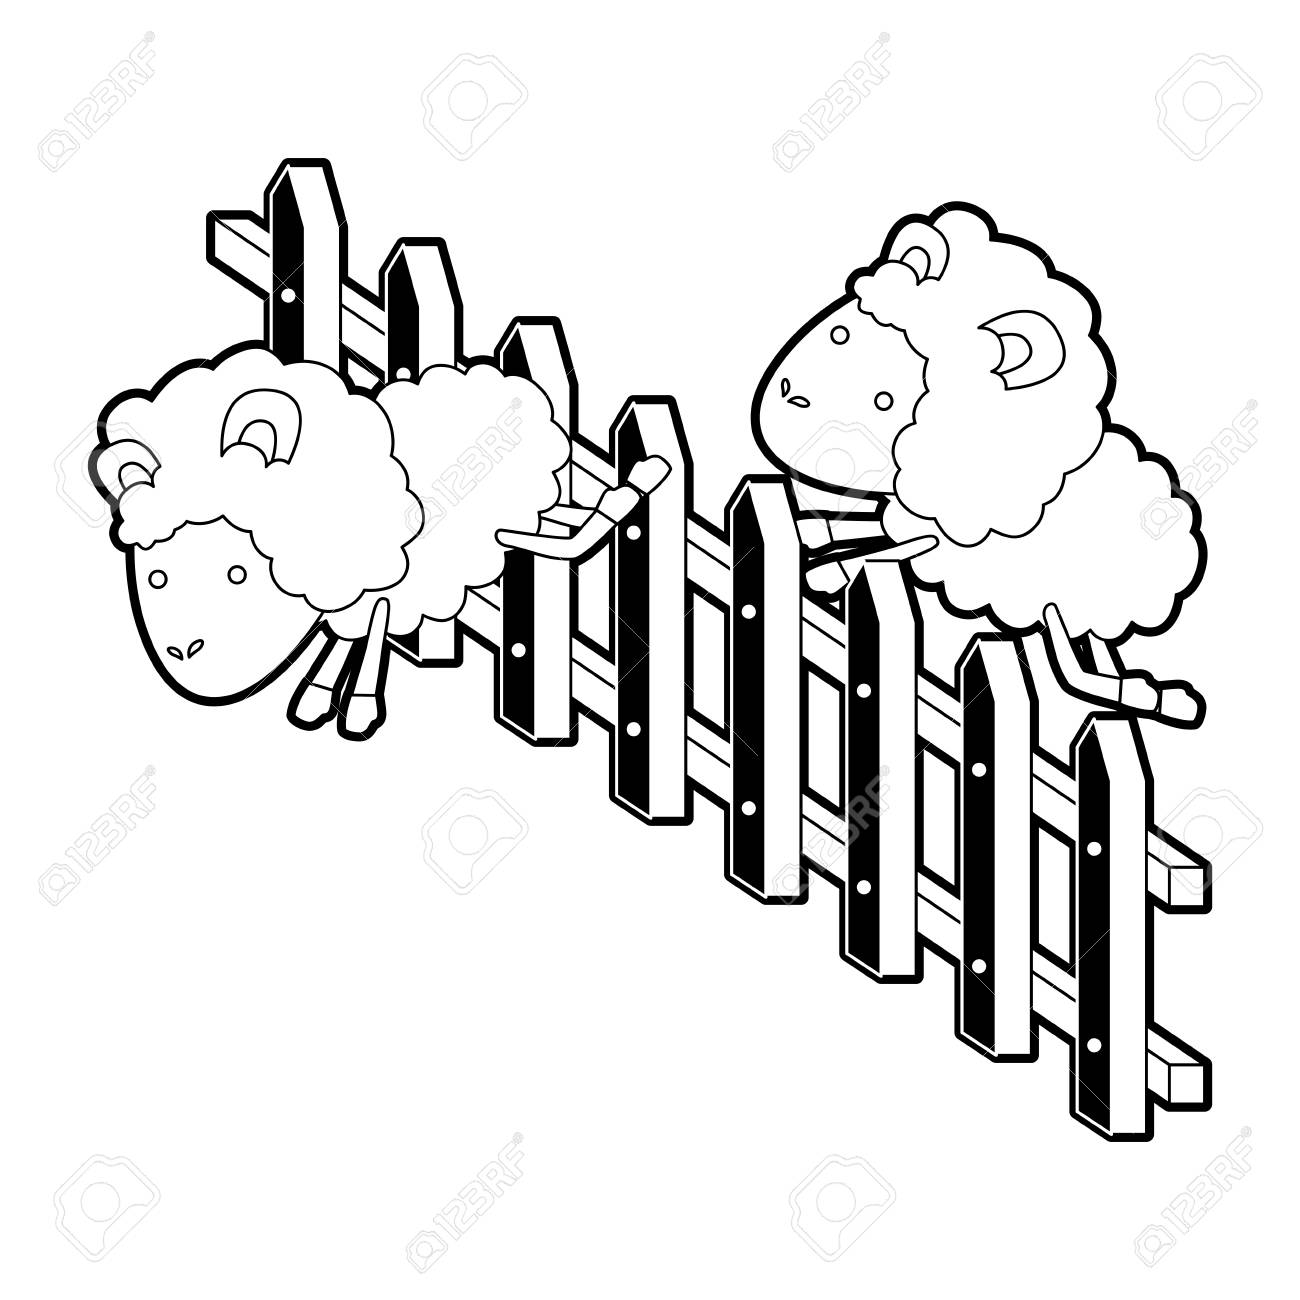 1300x1300 Sheep Animal Couple Jumping A Wooden Fence Black Color Section